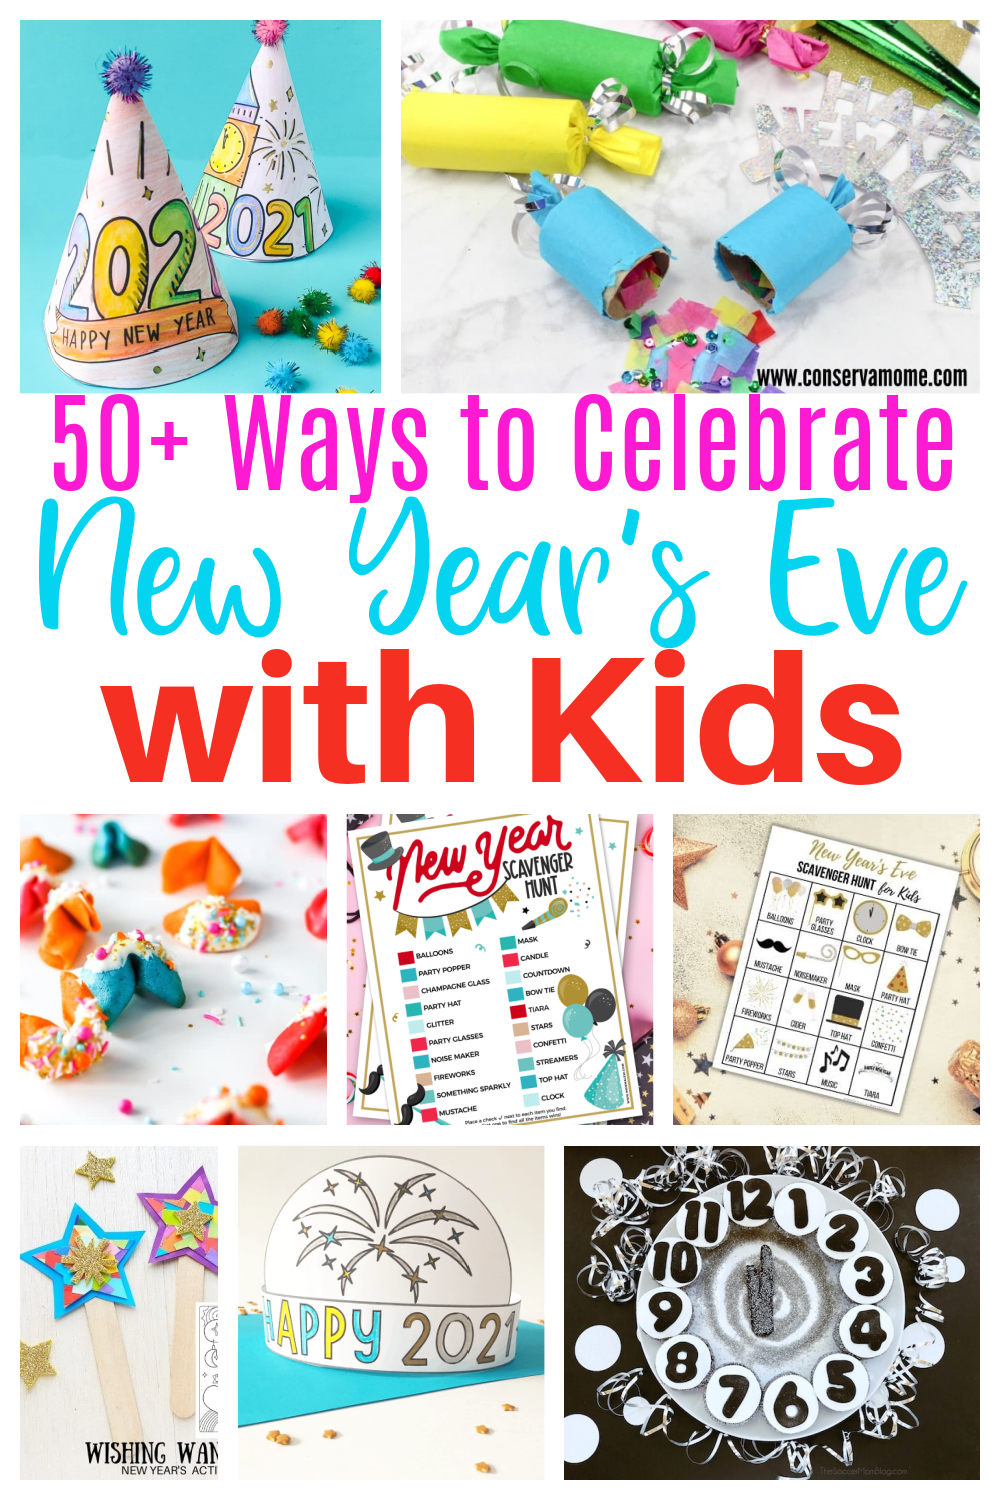 50+ Ways to celebrate New Year's Eve With kids